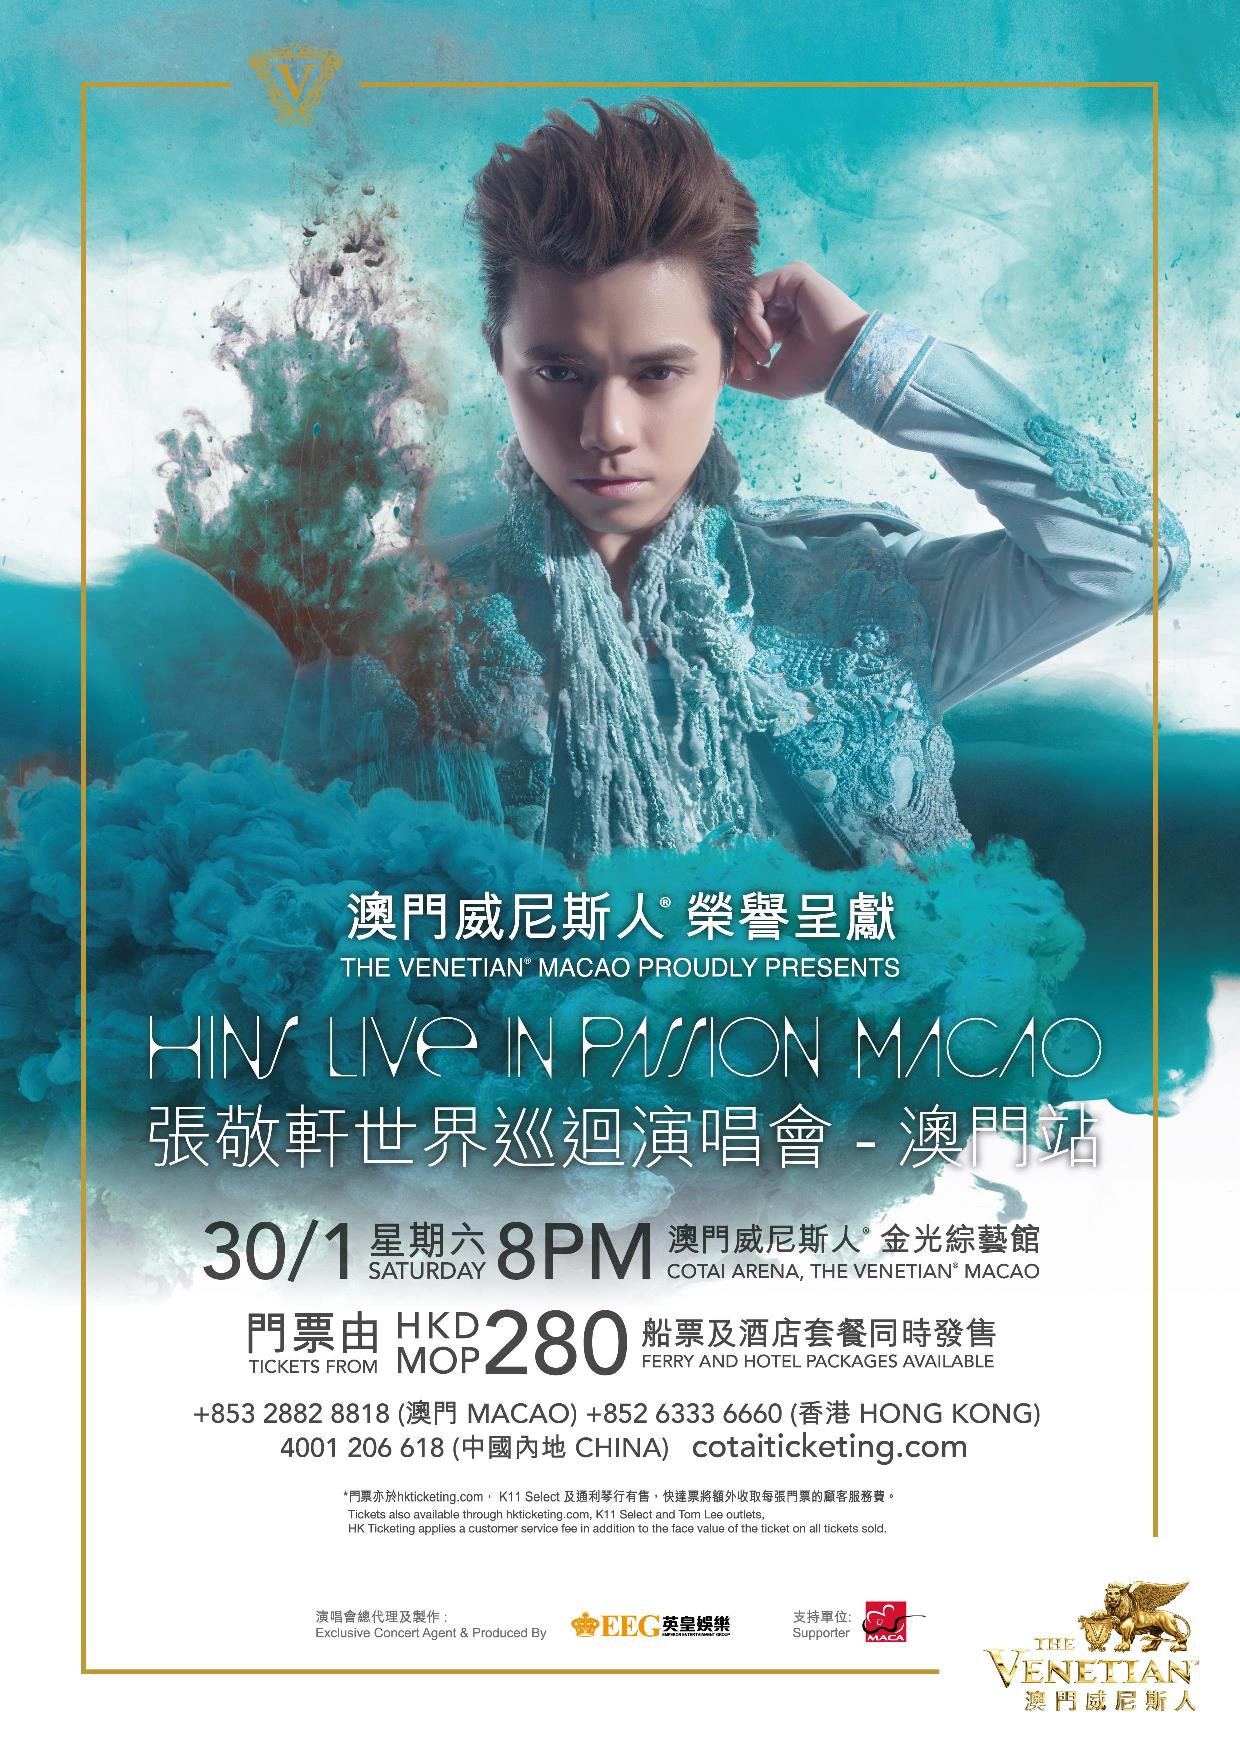 Special Package for Cantopop Superstar Hins Cheung's Concert in Macao on Jan 30